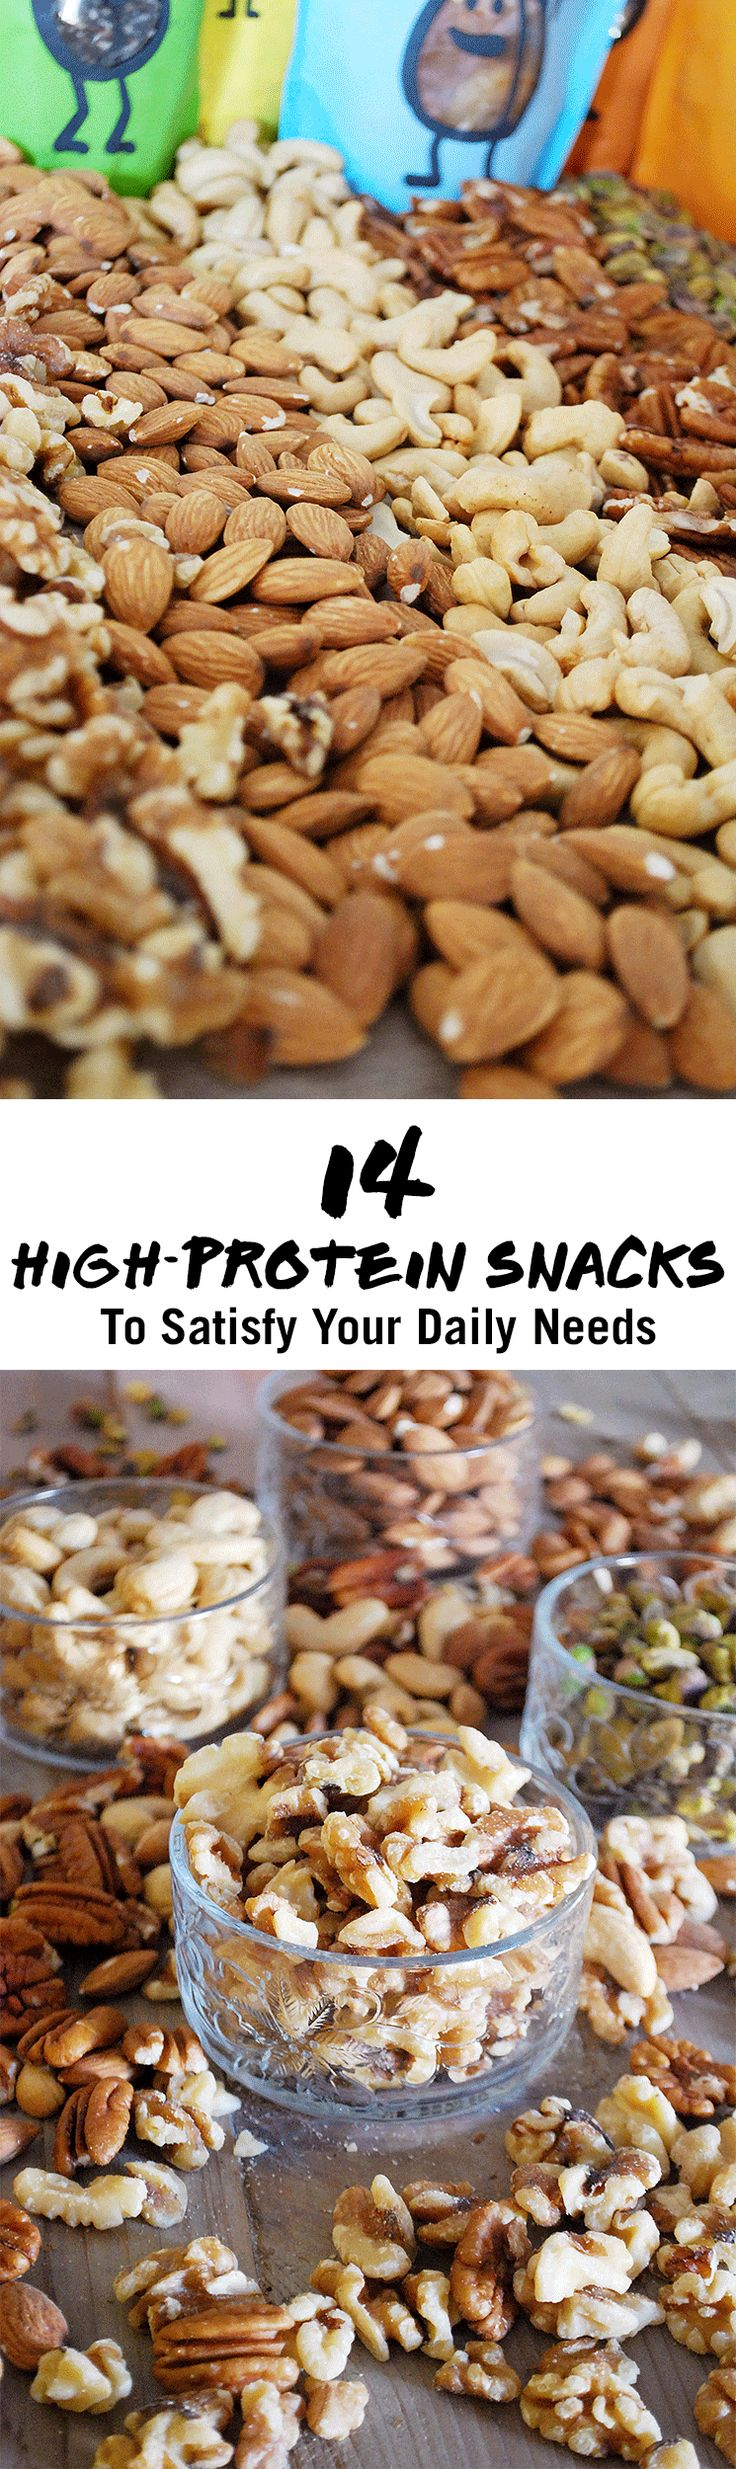 Nuts.com - High-Protein Snacks